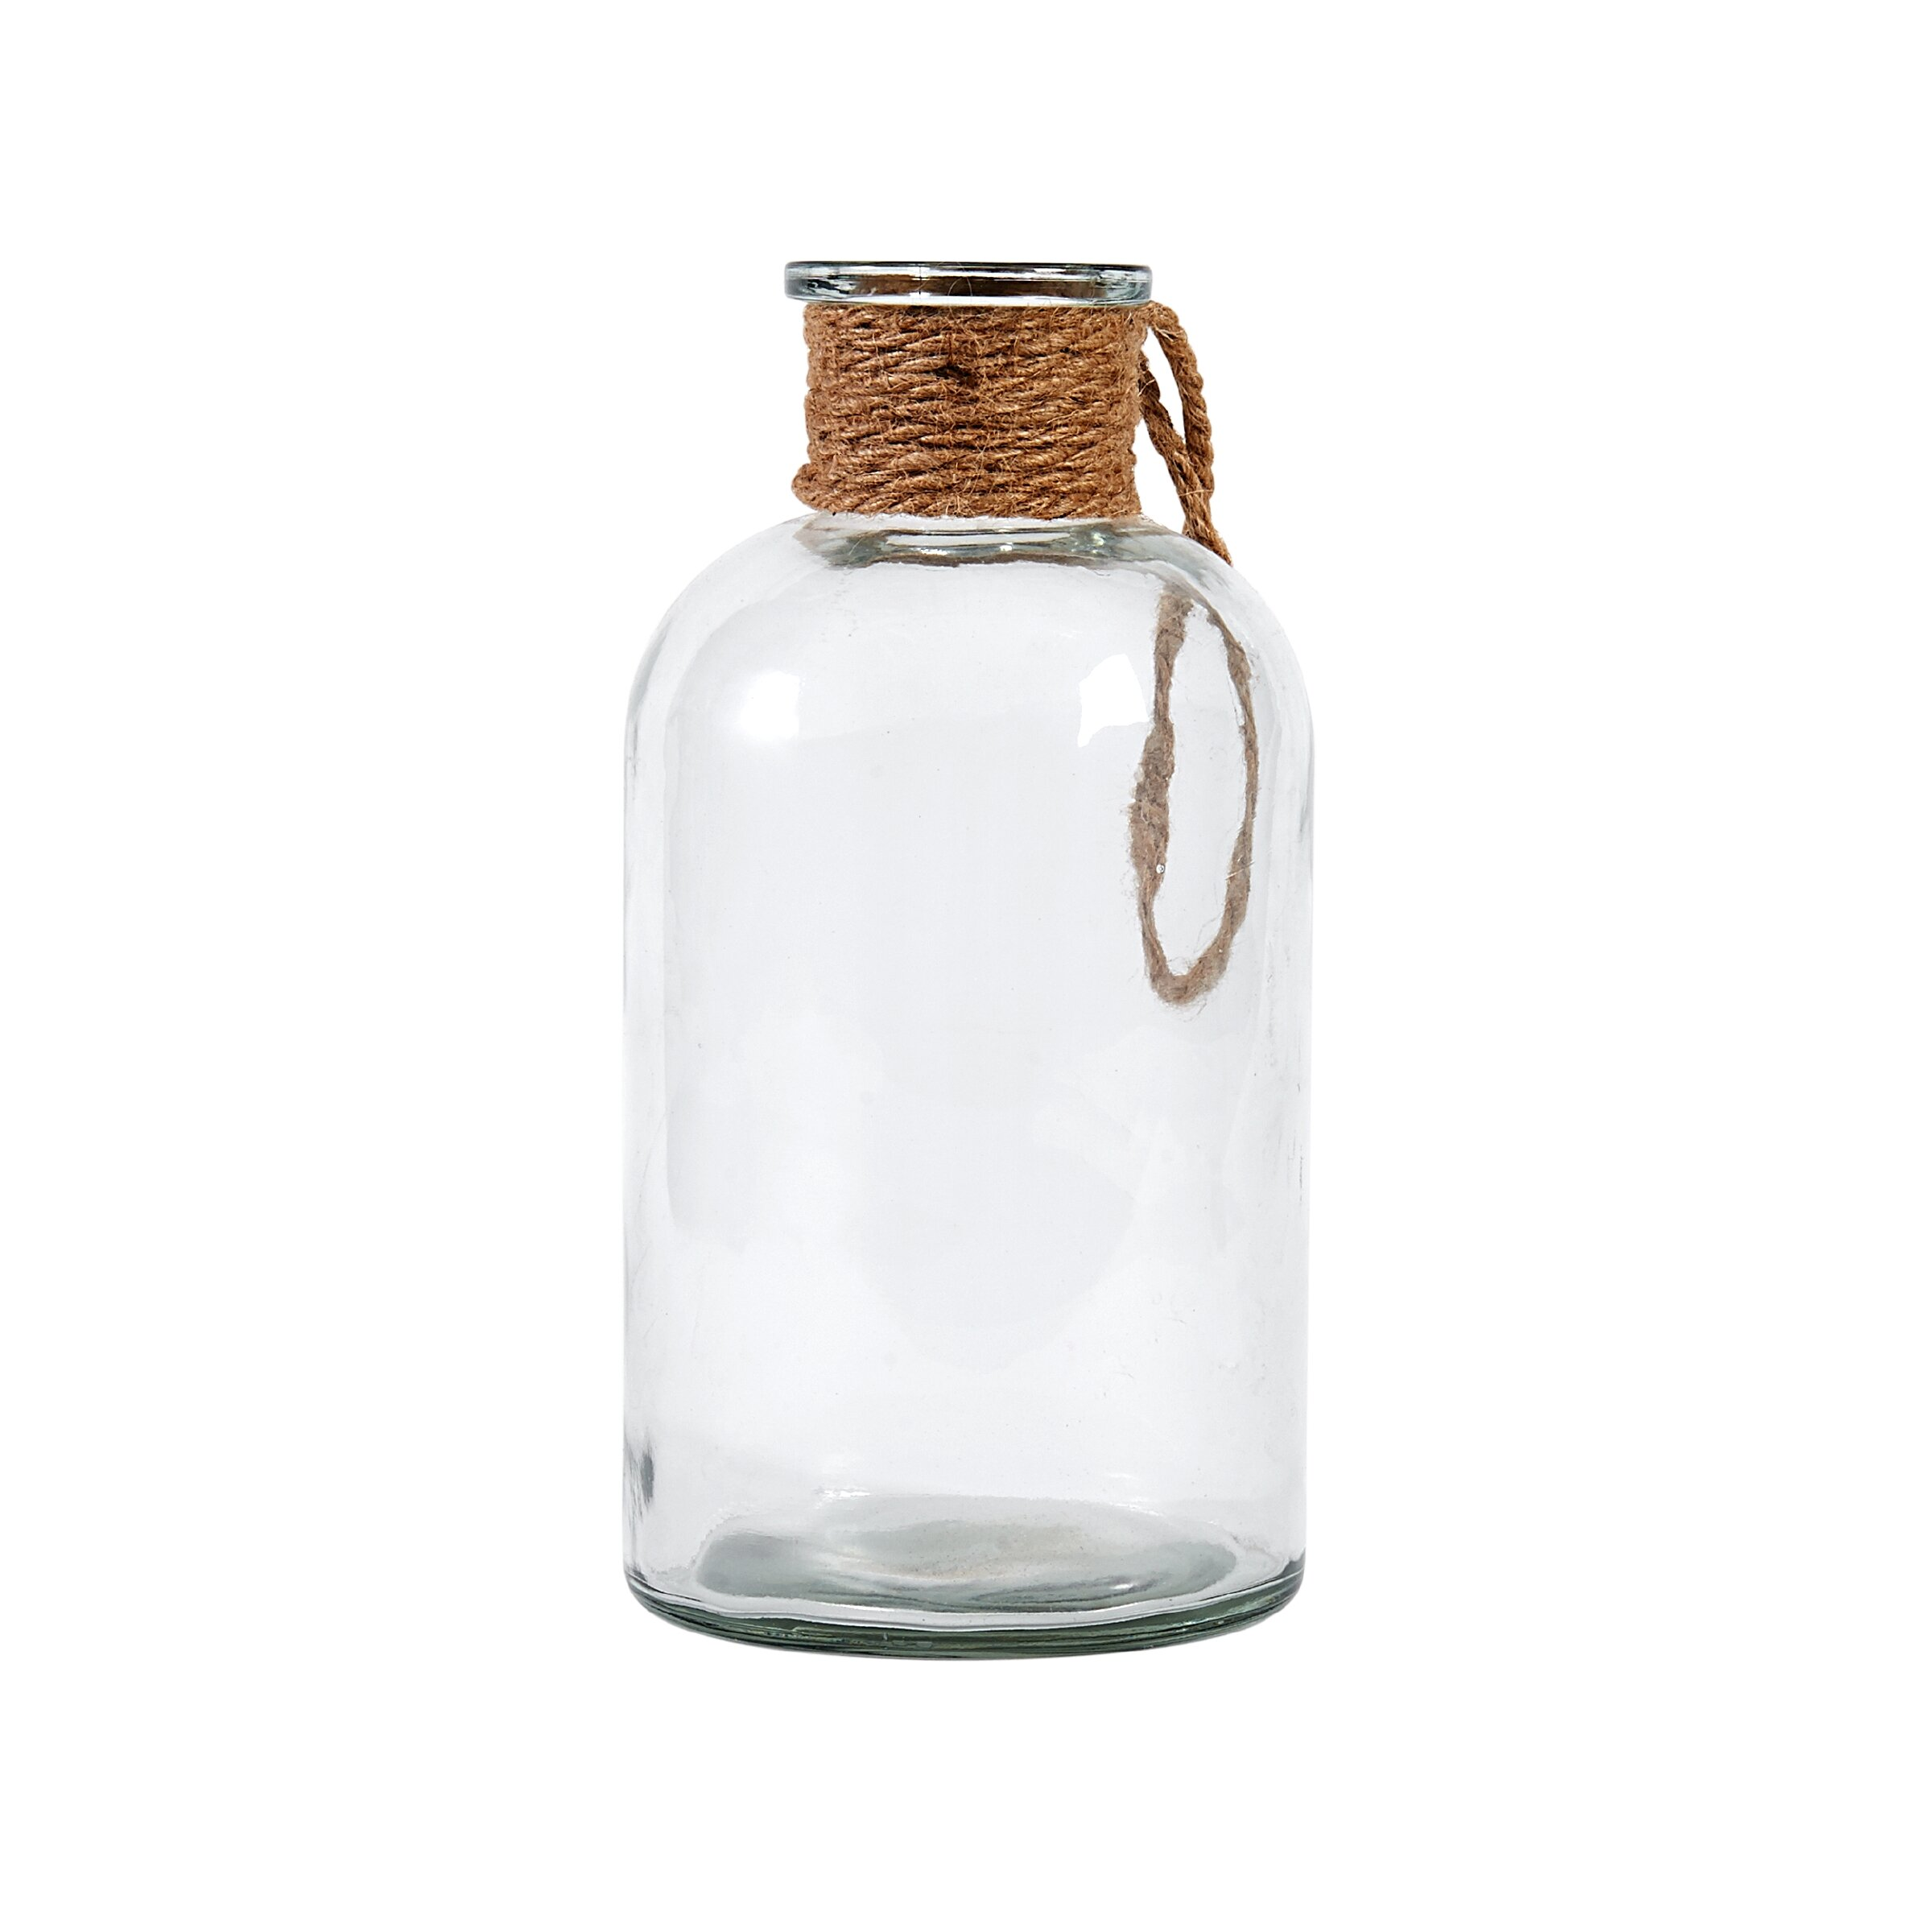 Breakwater Bay Decorative Glass Bottle with Hemp Rope Handle & Reviews |  Wayfair